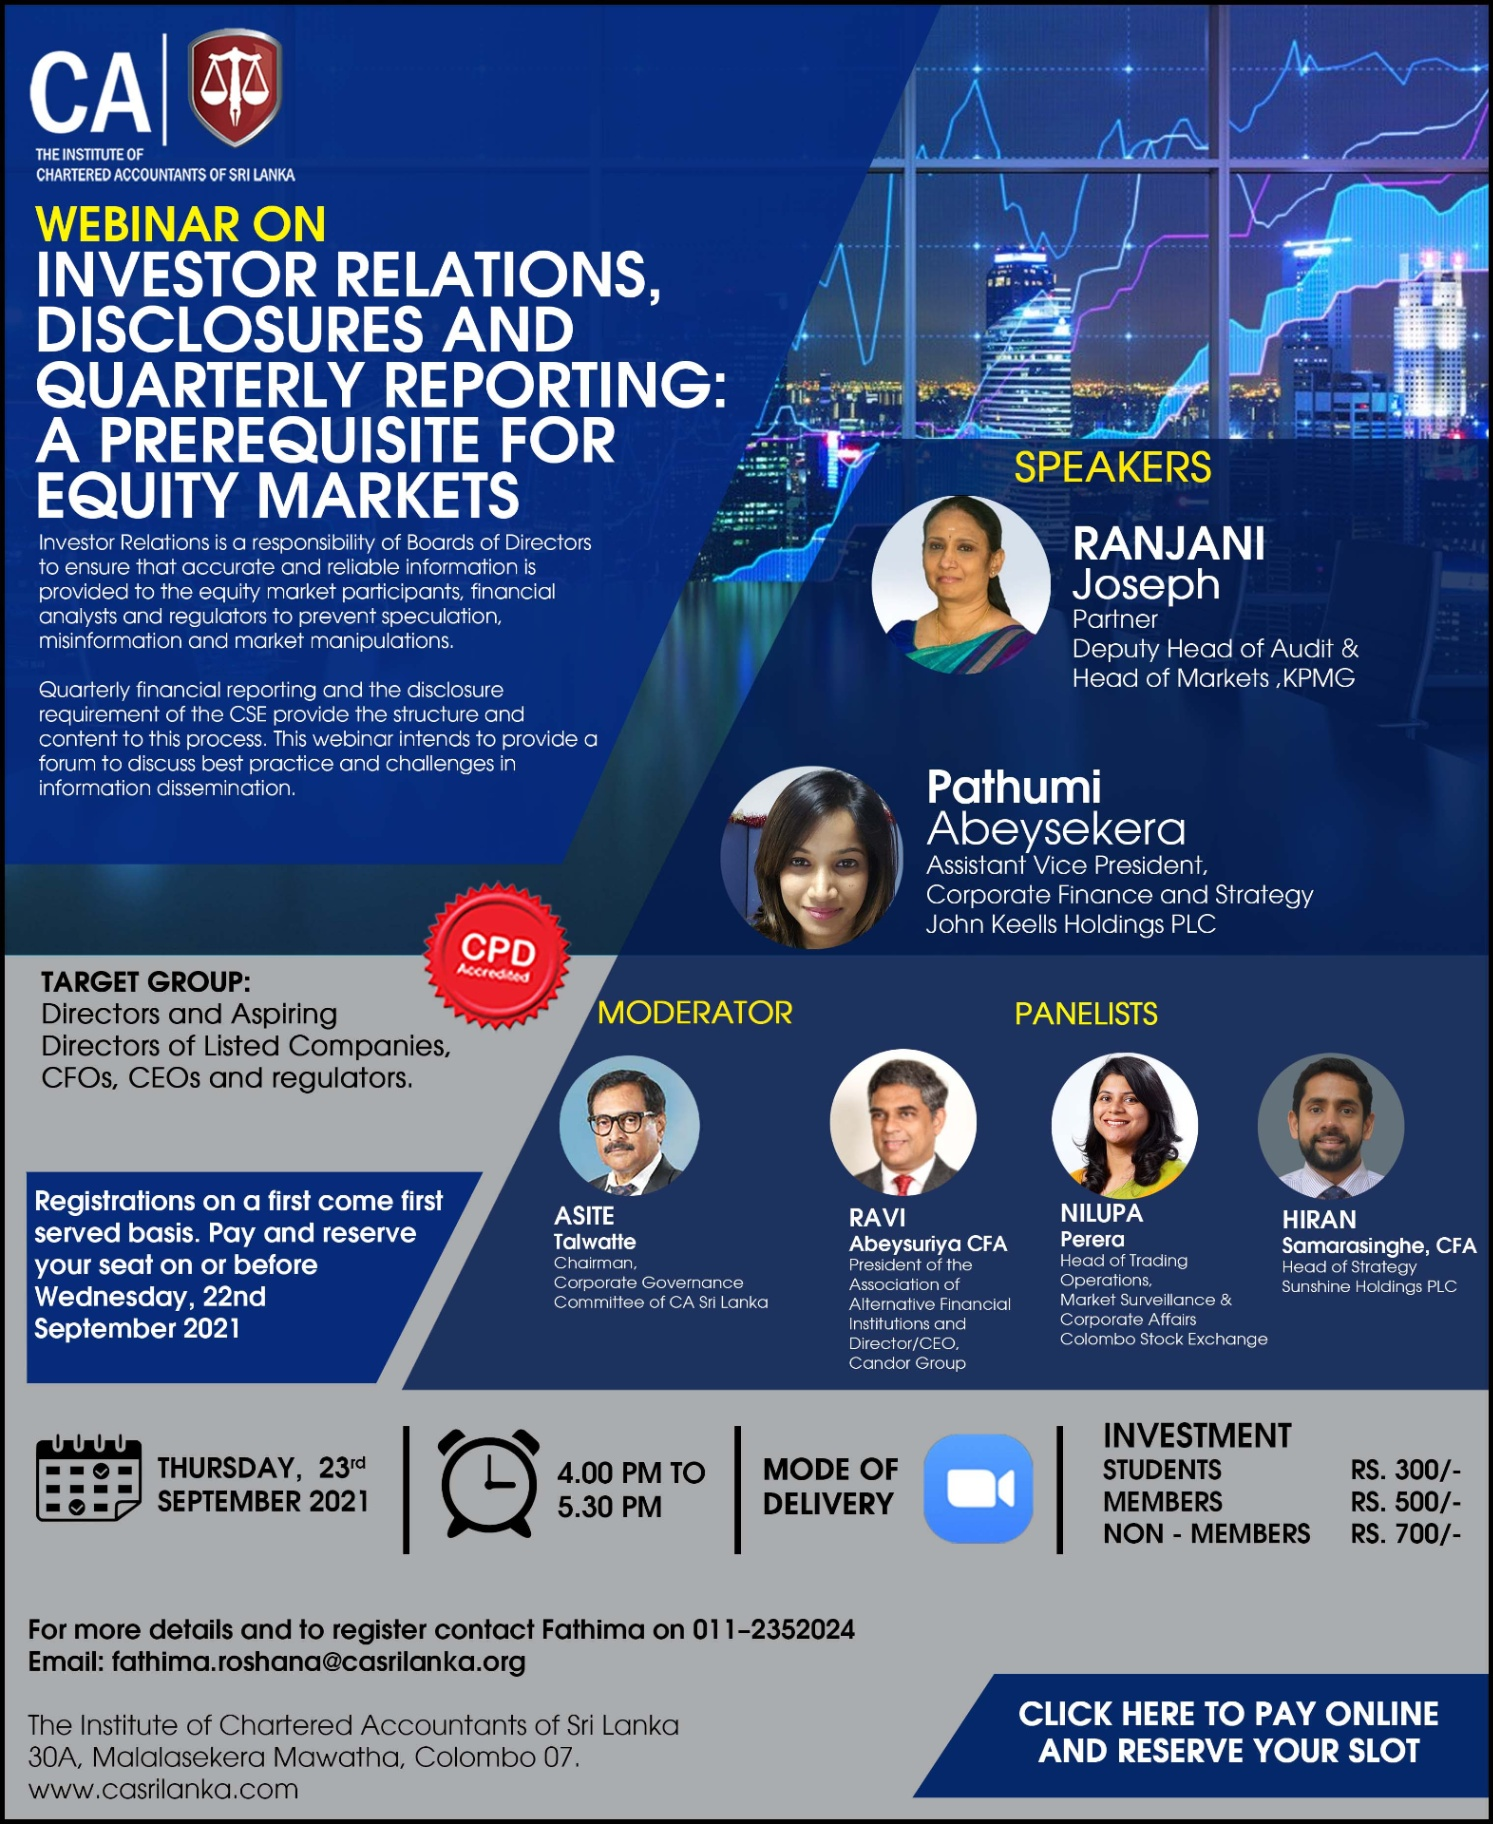 """Webinar on """" Investor Relations, Disclosures and Quarterly Reporting: A Prerequisite for Equity Markets"""""""